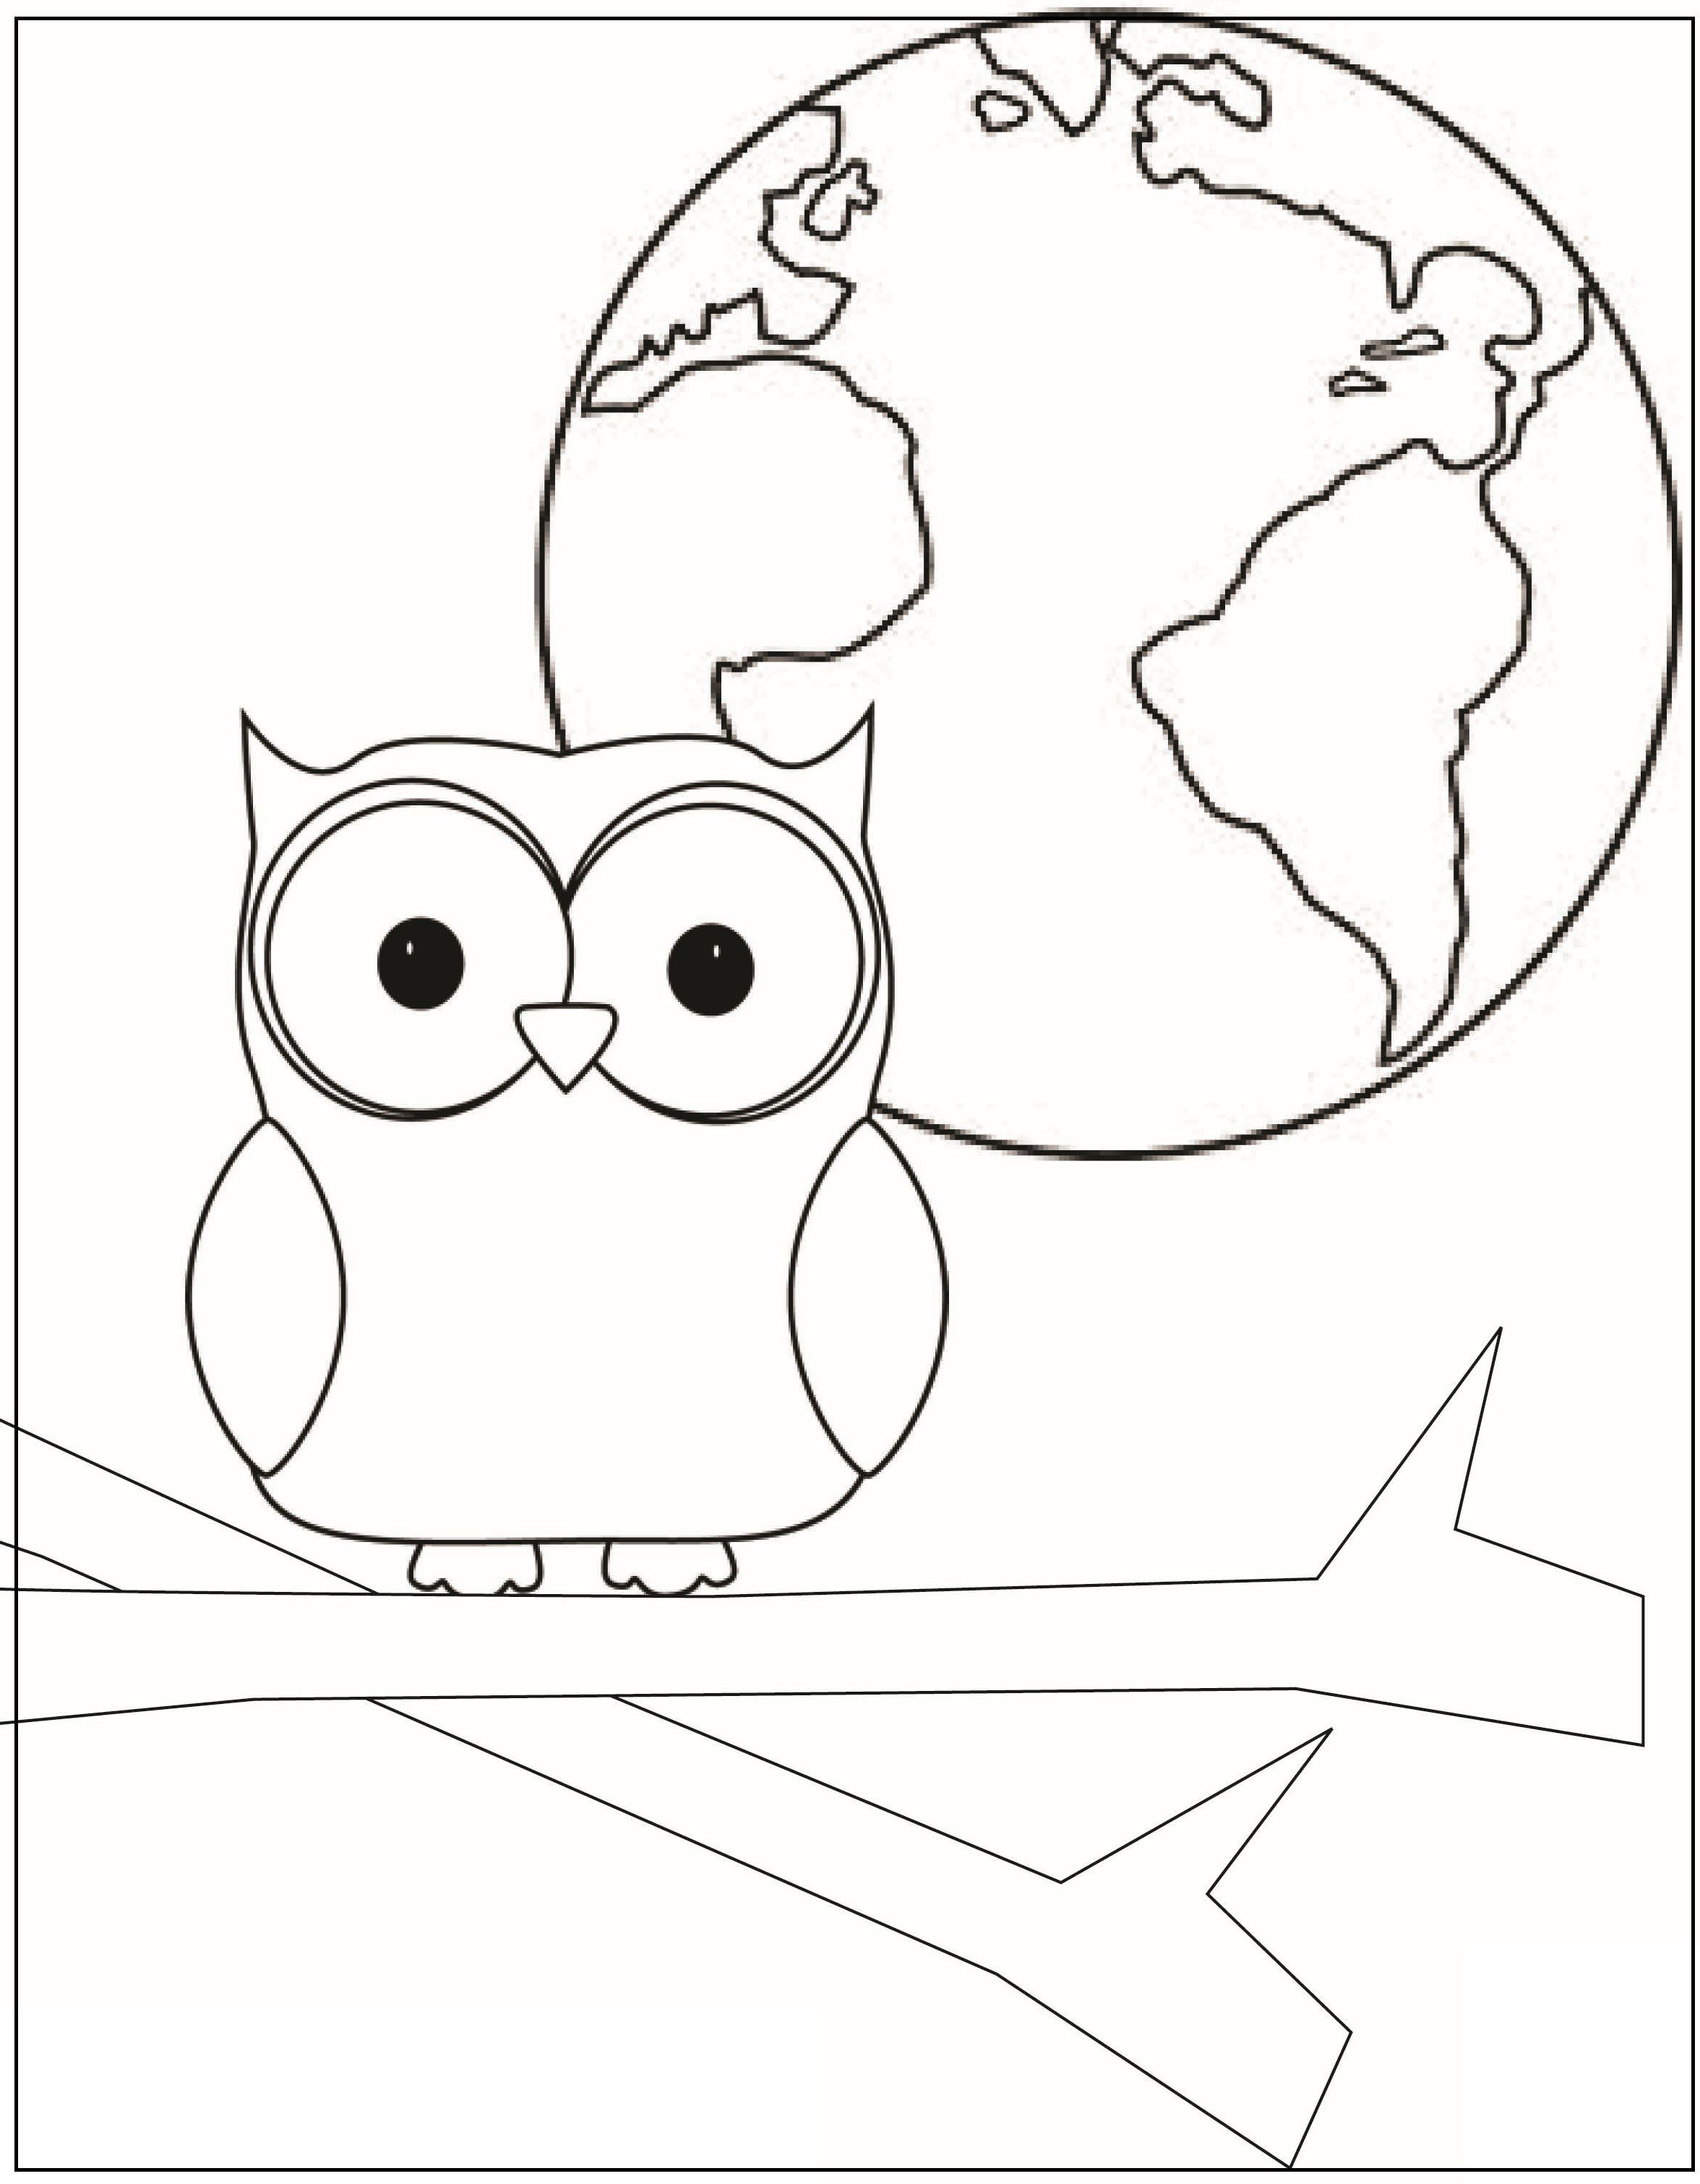 save our earth printable earth coloring pages coloring for kids